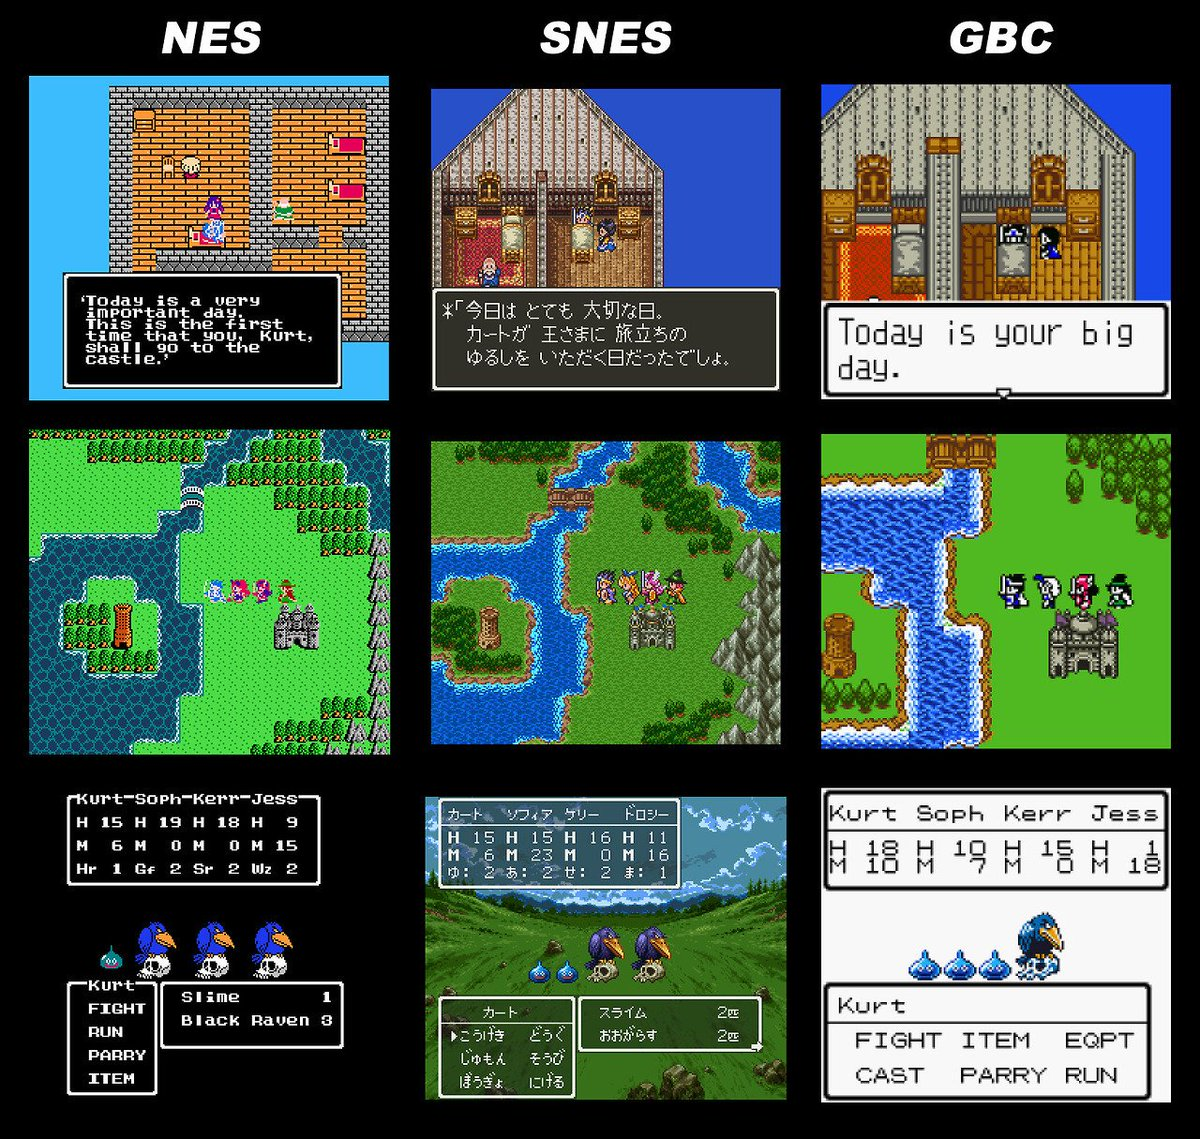 Fantasyanime On Twitter Screen Shot Comparison Of Dragon Warrior Quest 3 Across The Nes Snes And Game Boy Color It S Always Cool To See A Classic Game Re Imagined With Better Graphics Https T Co Xfsna5lihg